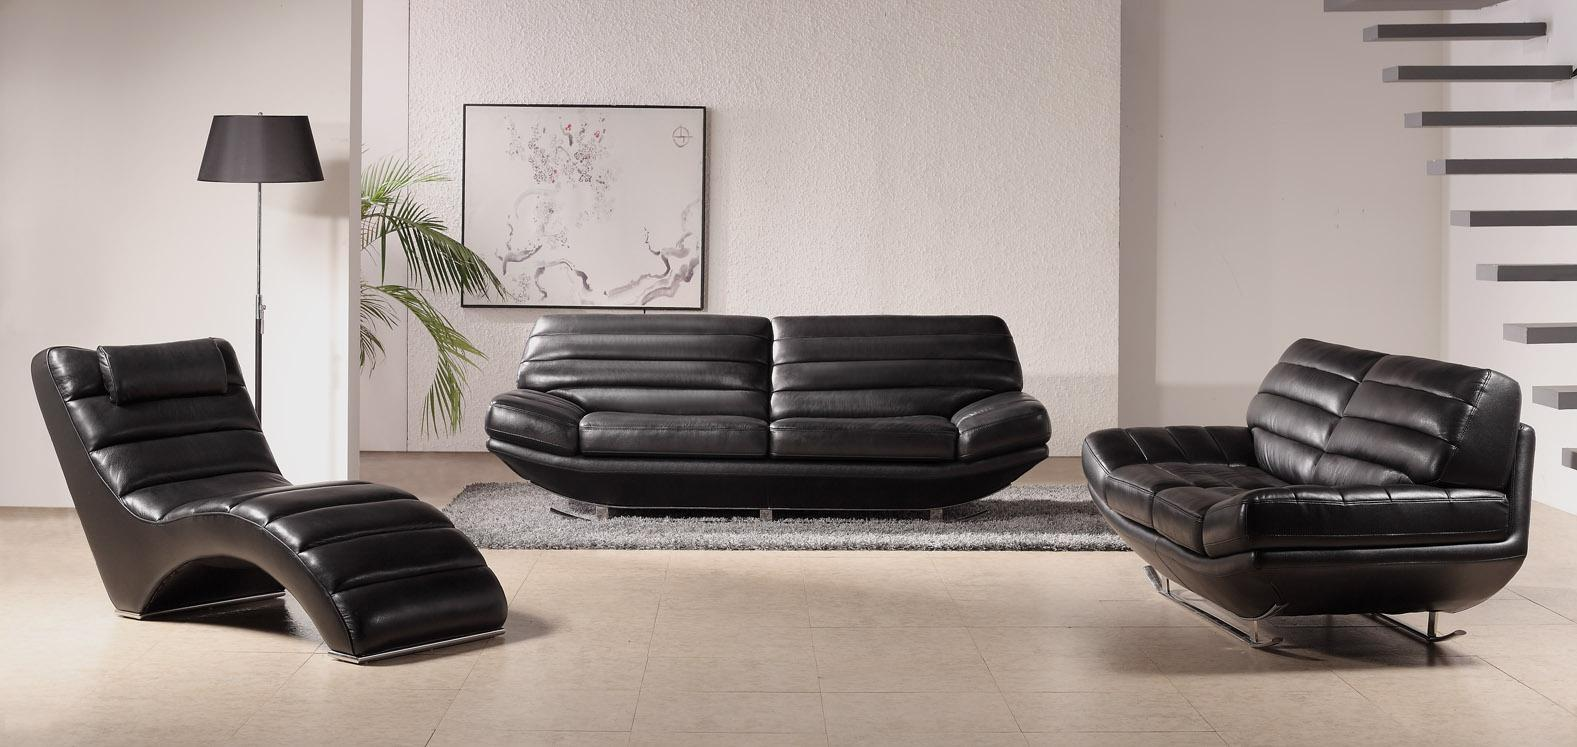 Know about types of couches and sofas my decorative for Contemporary living room furniture sets